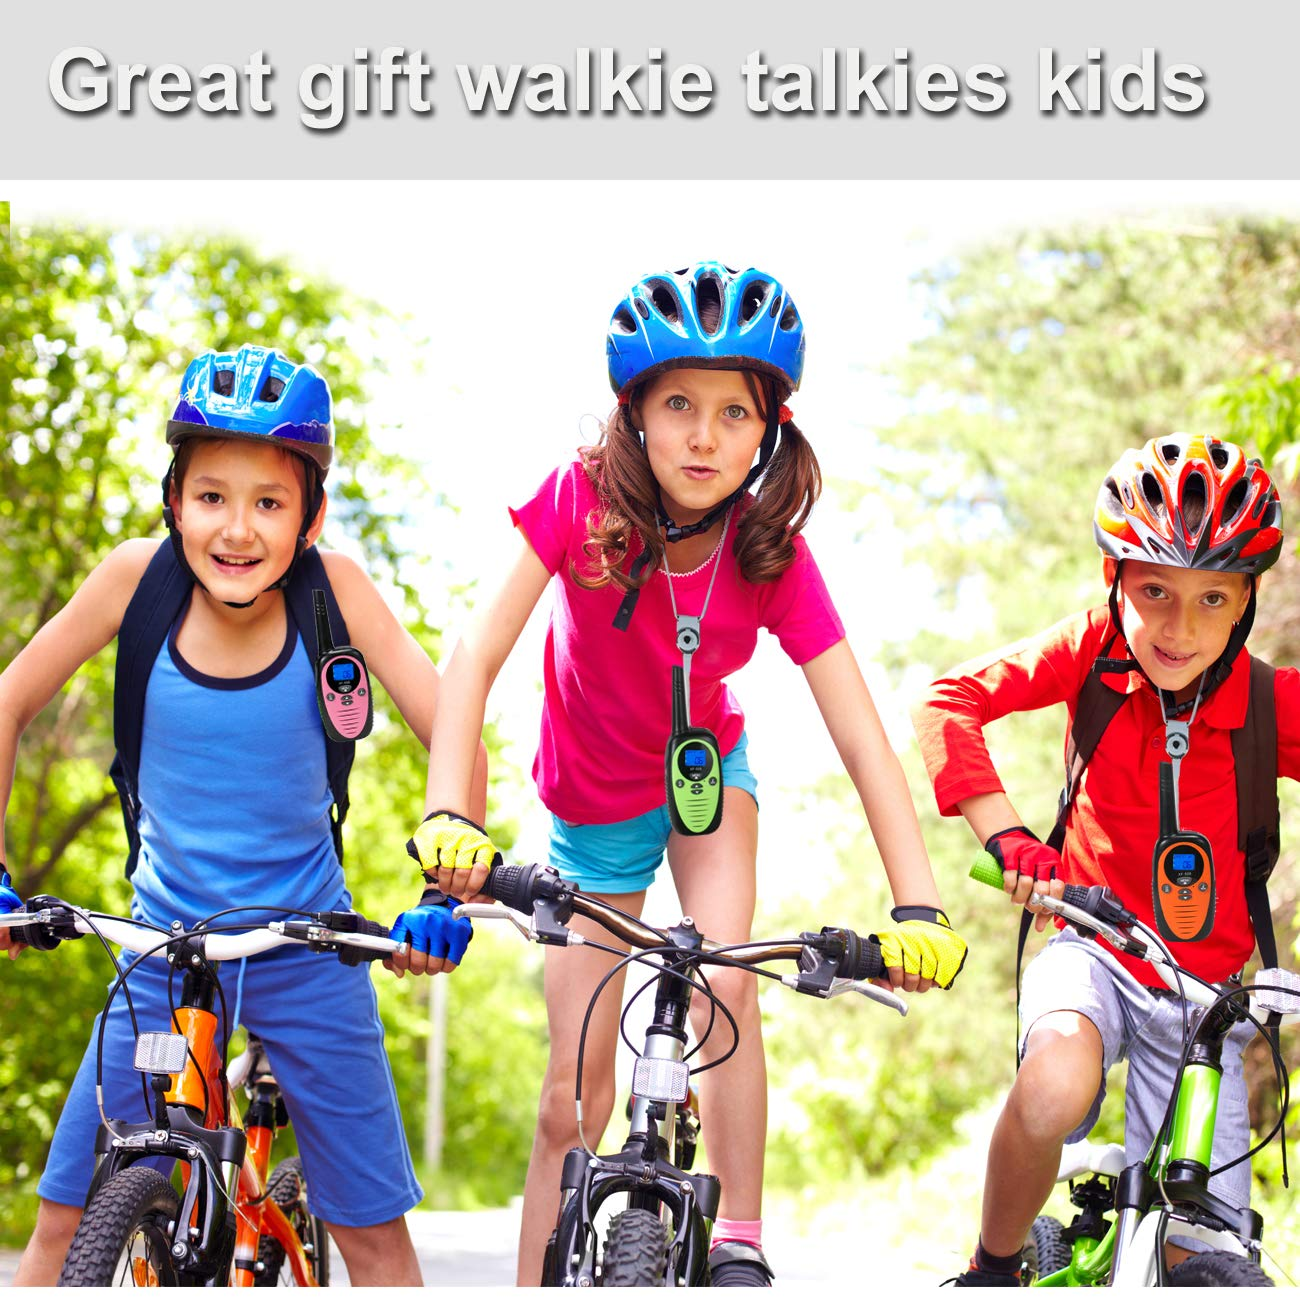 FREE TO FLY Kids Walkie Talkies Kid Toys 22 Channel FRS 2 Way Radios Party Toys for Camping/Hiking/Adventures 3.0 Miles Range Suit 6 UP Year Old Kids & Adults ( Three Packs with 9 Batteries ) by FREE TO FLY (Image #2)